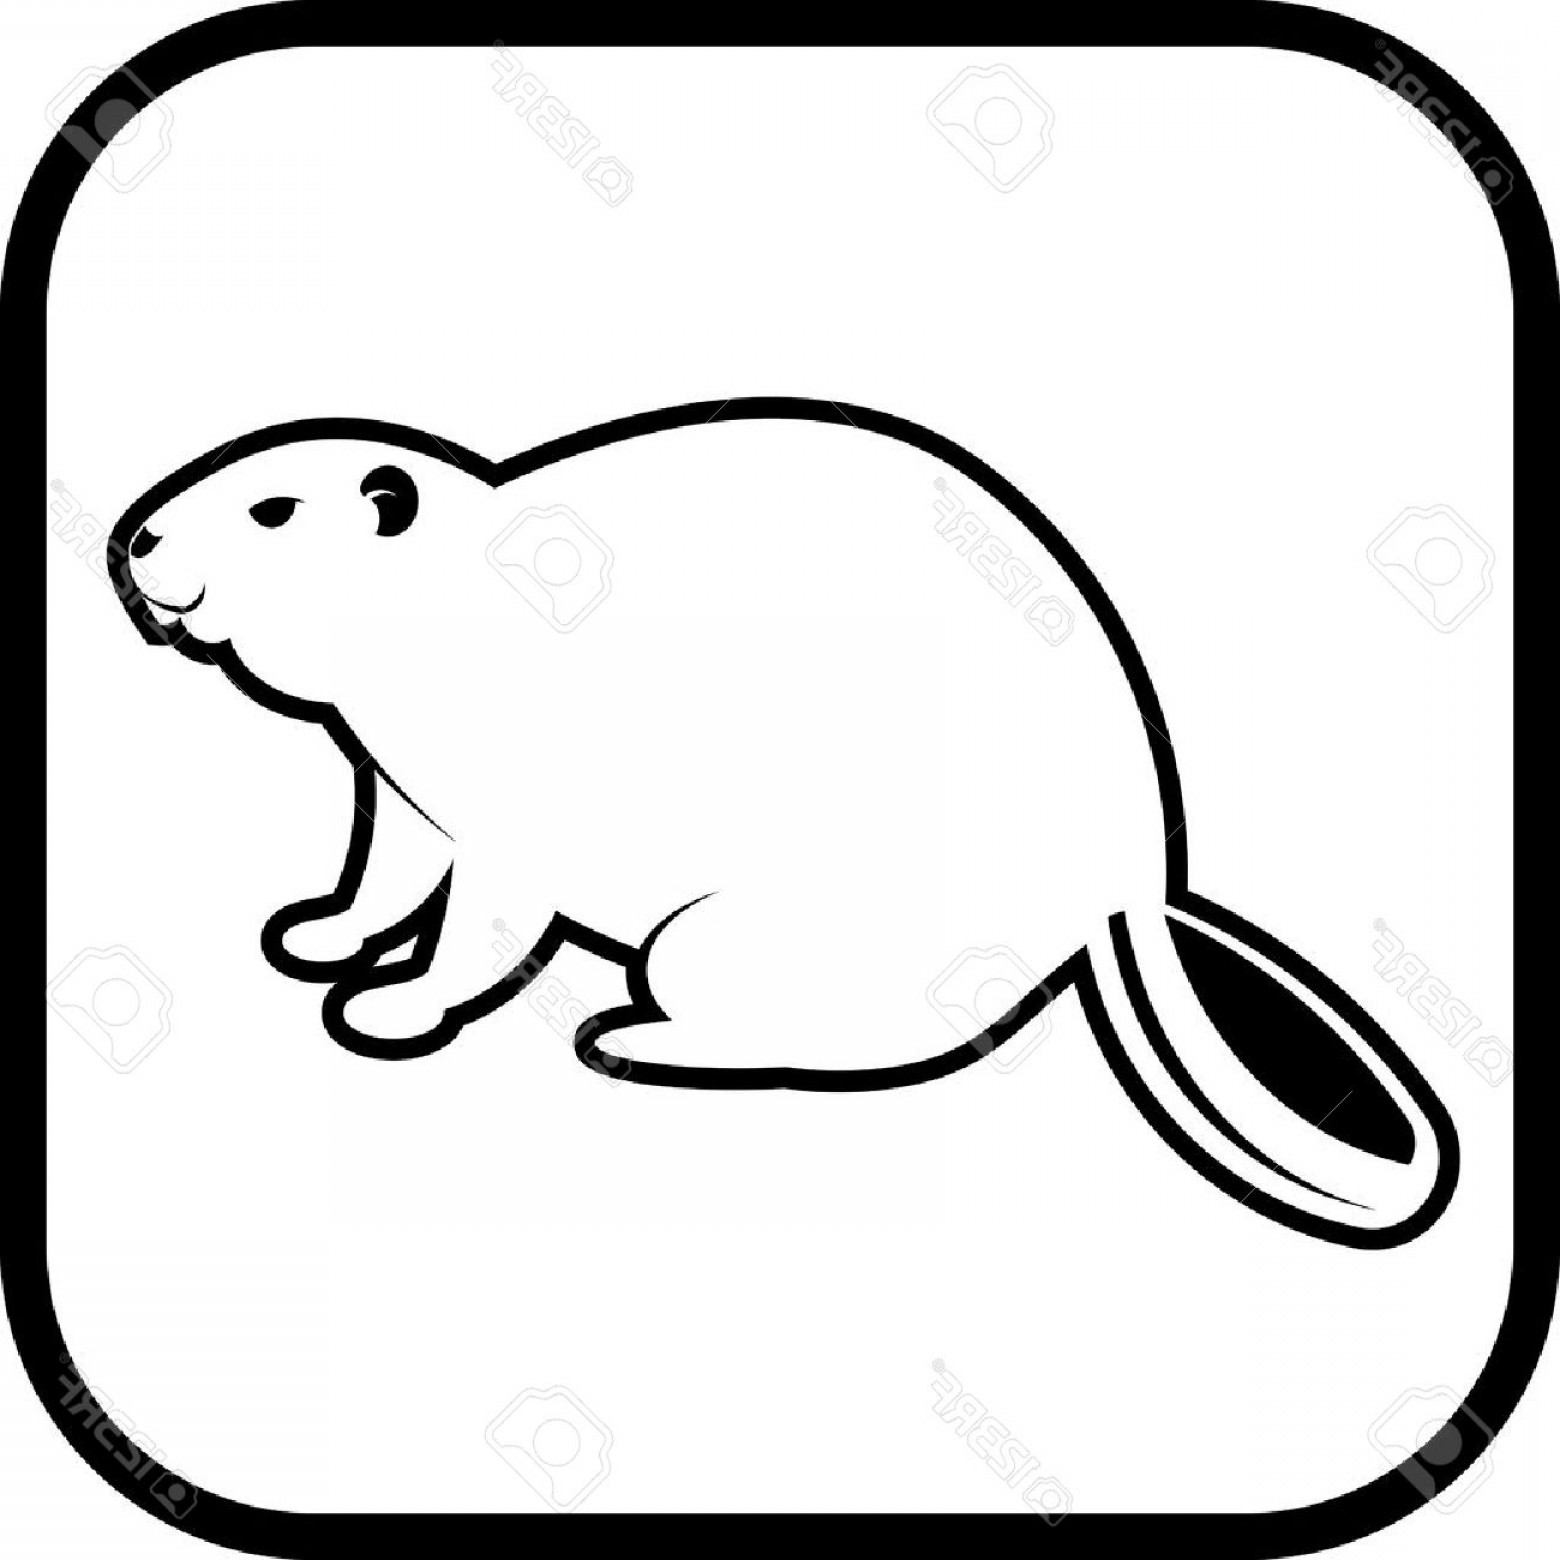 Beaver Drawing Outline At Getdrawings